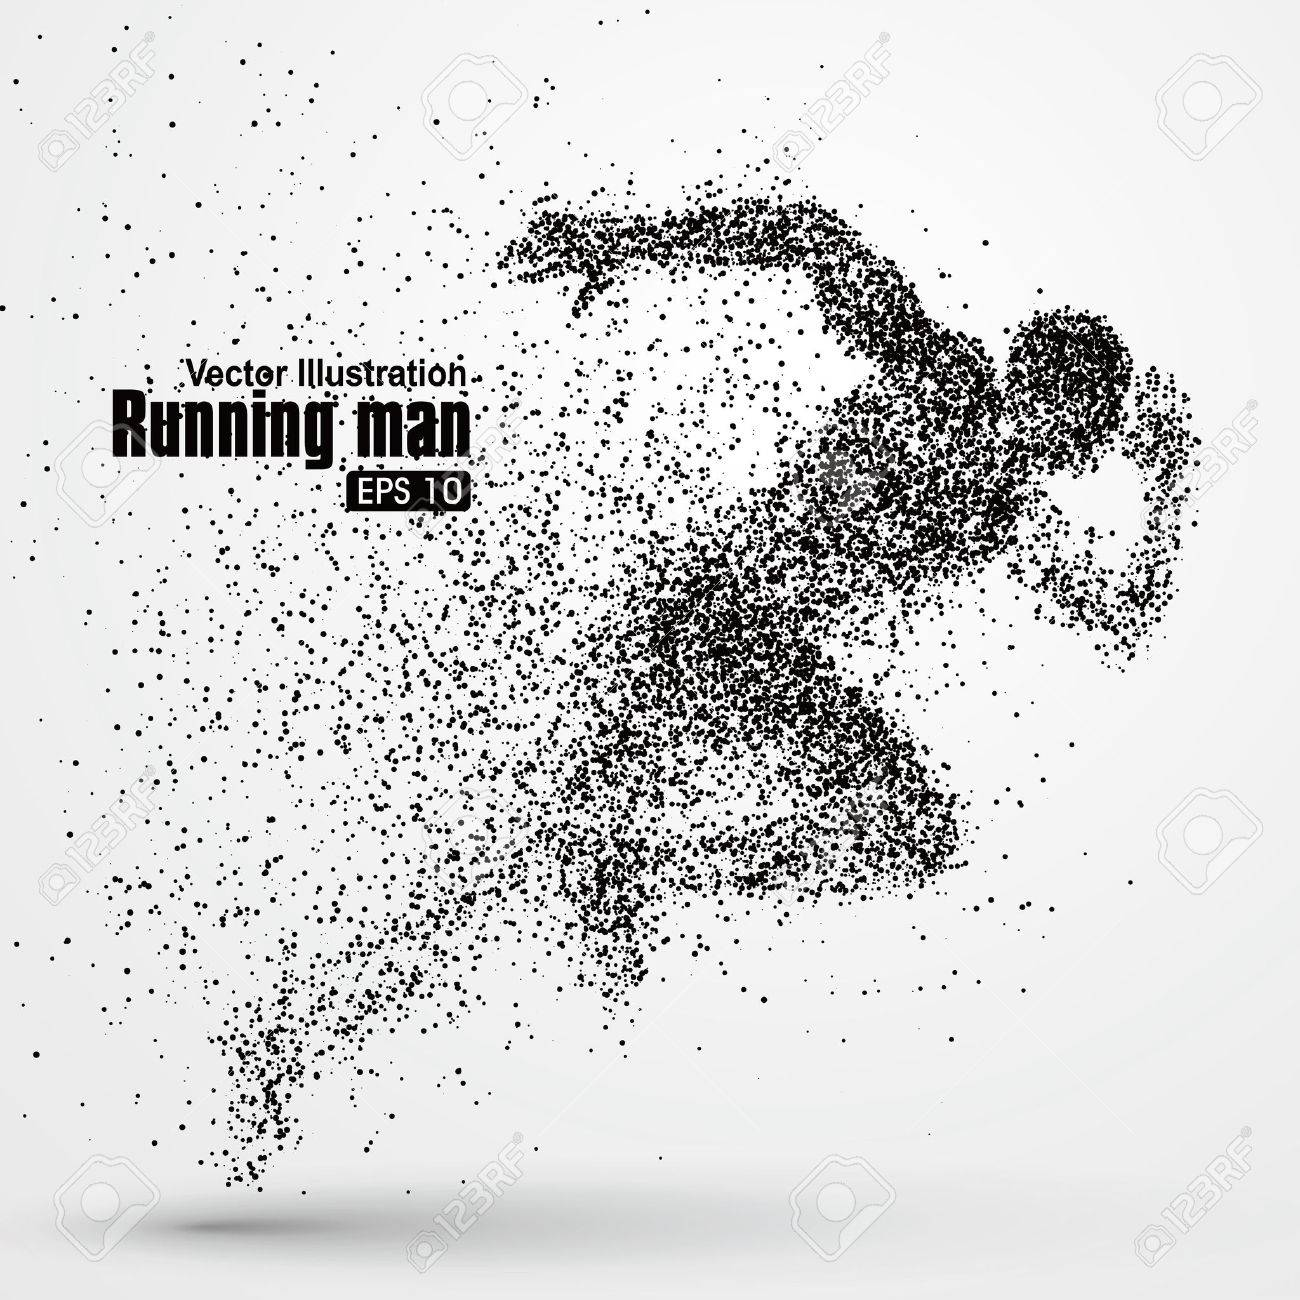 Running Man, particle divergent composition, vector illustration. - 52737213